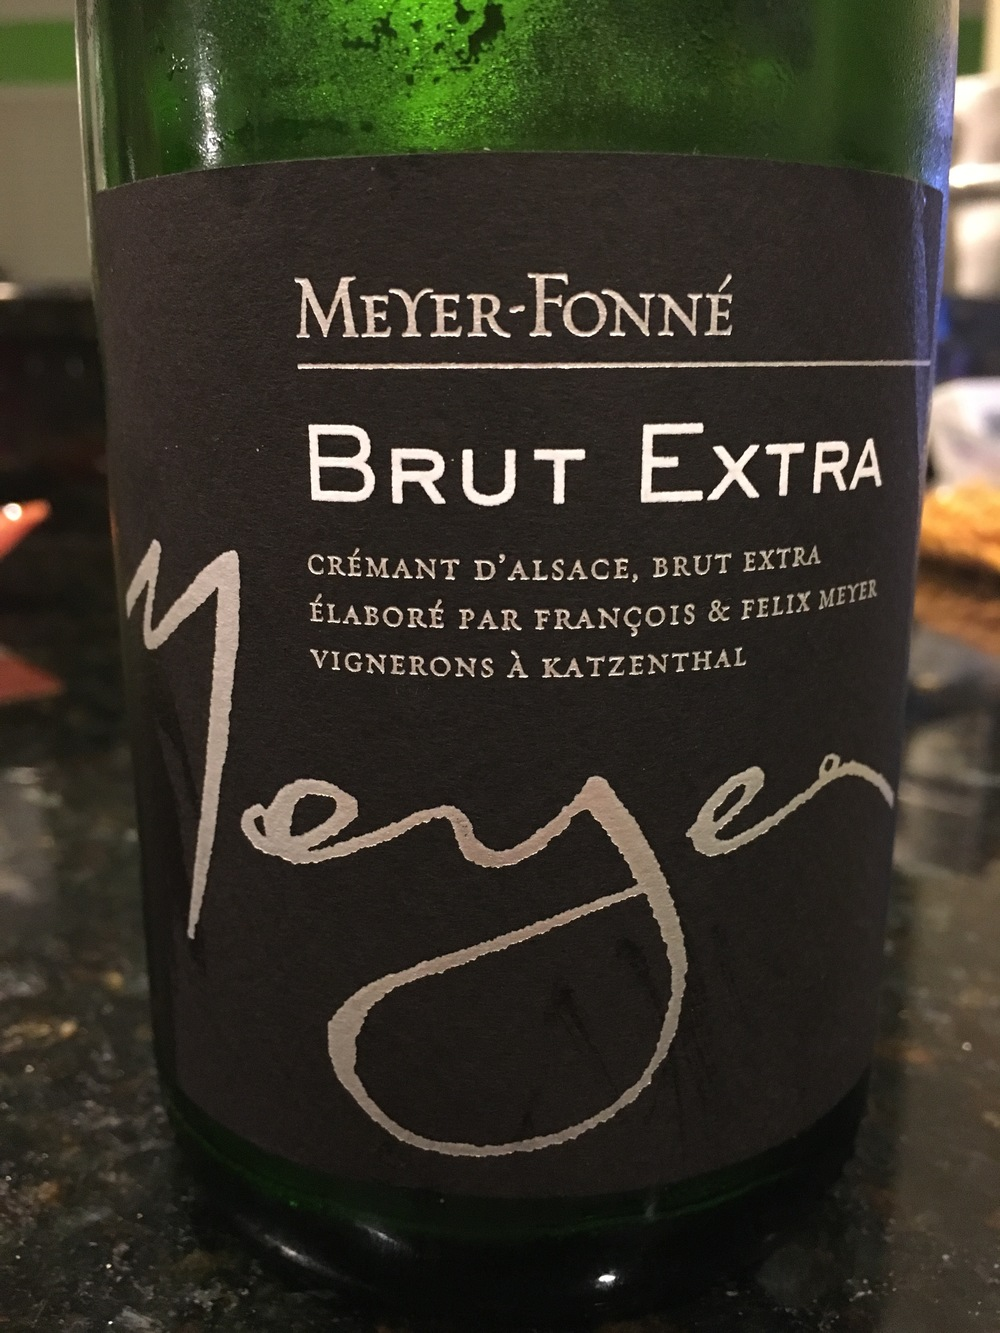 My favorite Cremant d'Alsace from Meyer-Fonné